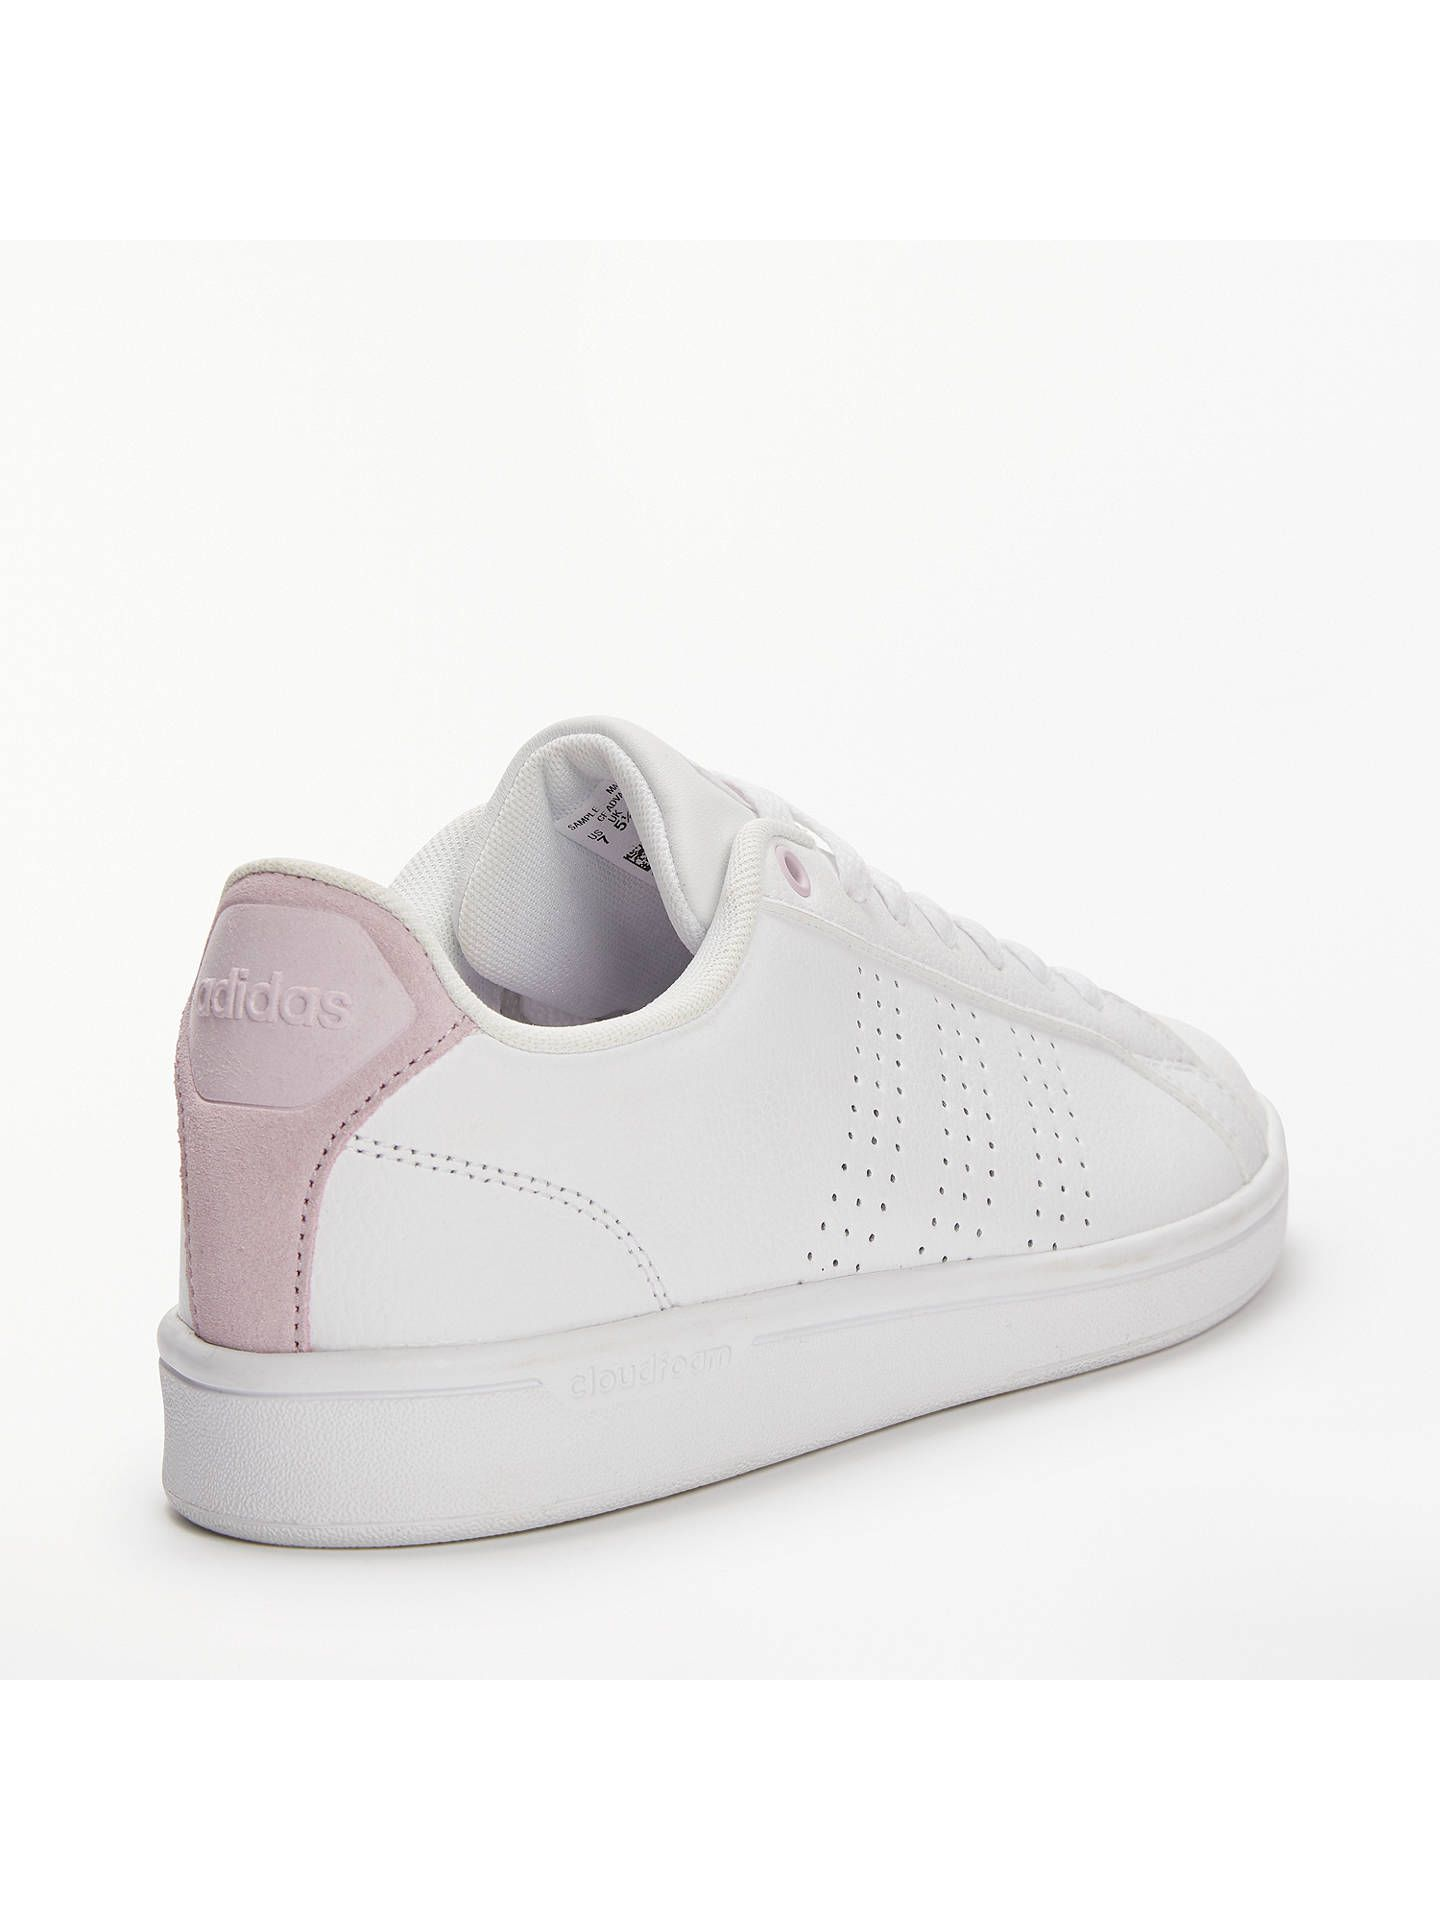 sale retailer 2c8fe 3f52e Buyadidas Neo Cloudfoam Advantage Womens Trainers, WhitePink, 4 Online at  johnlewis.com